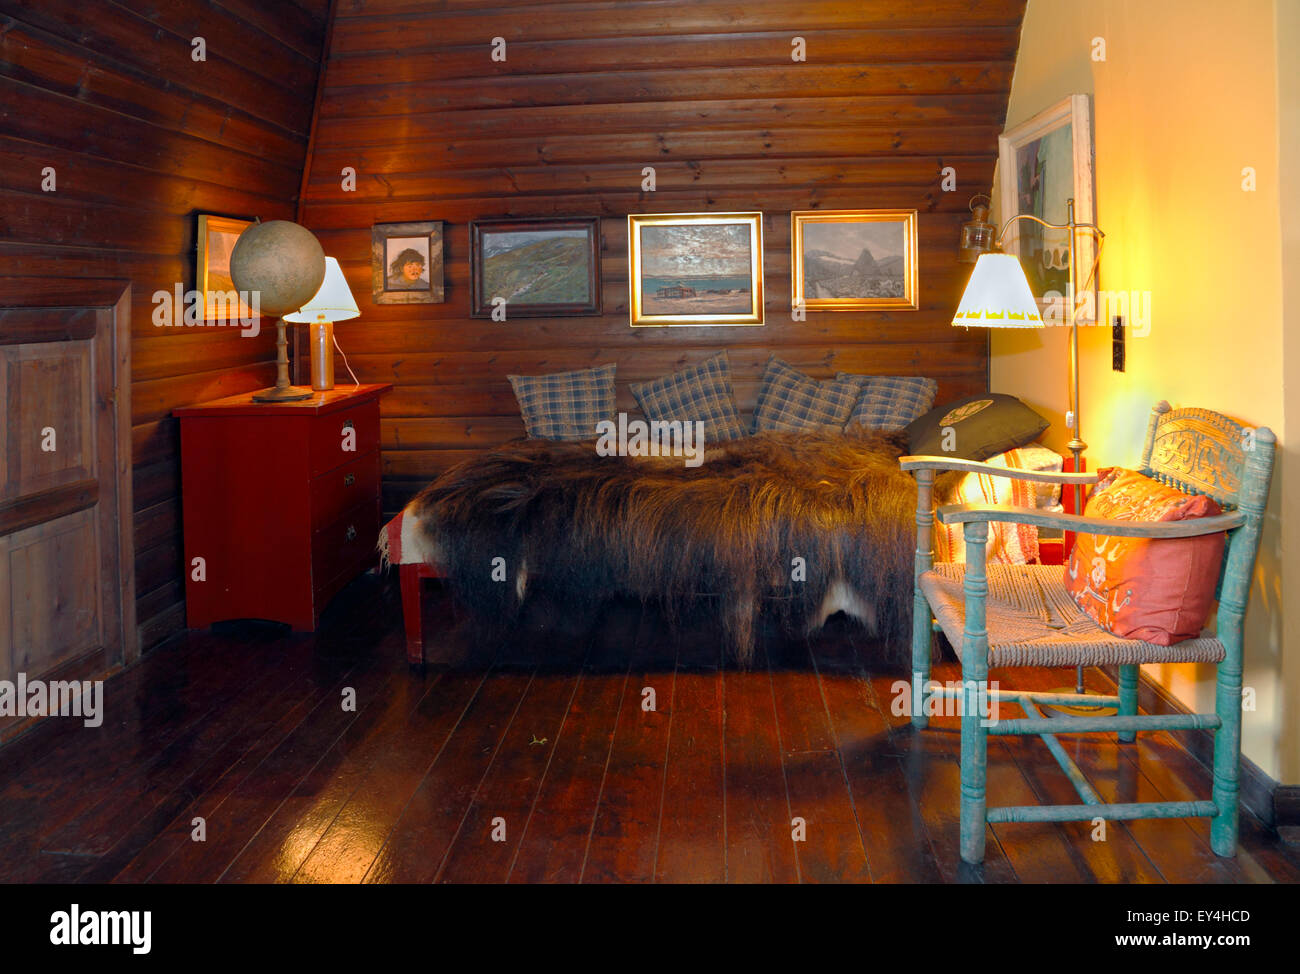 Knud Rasmussen's house in Hundested. Corner of the big study or workroom on the first floor. - Stock Image